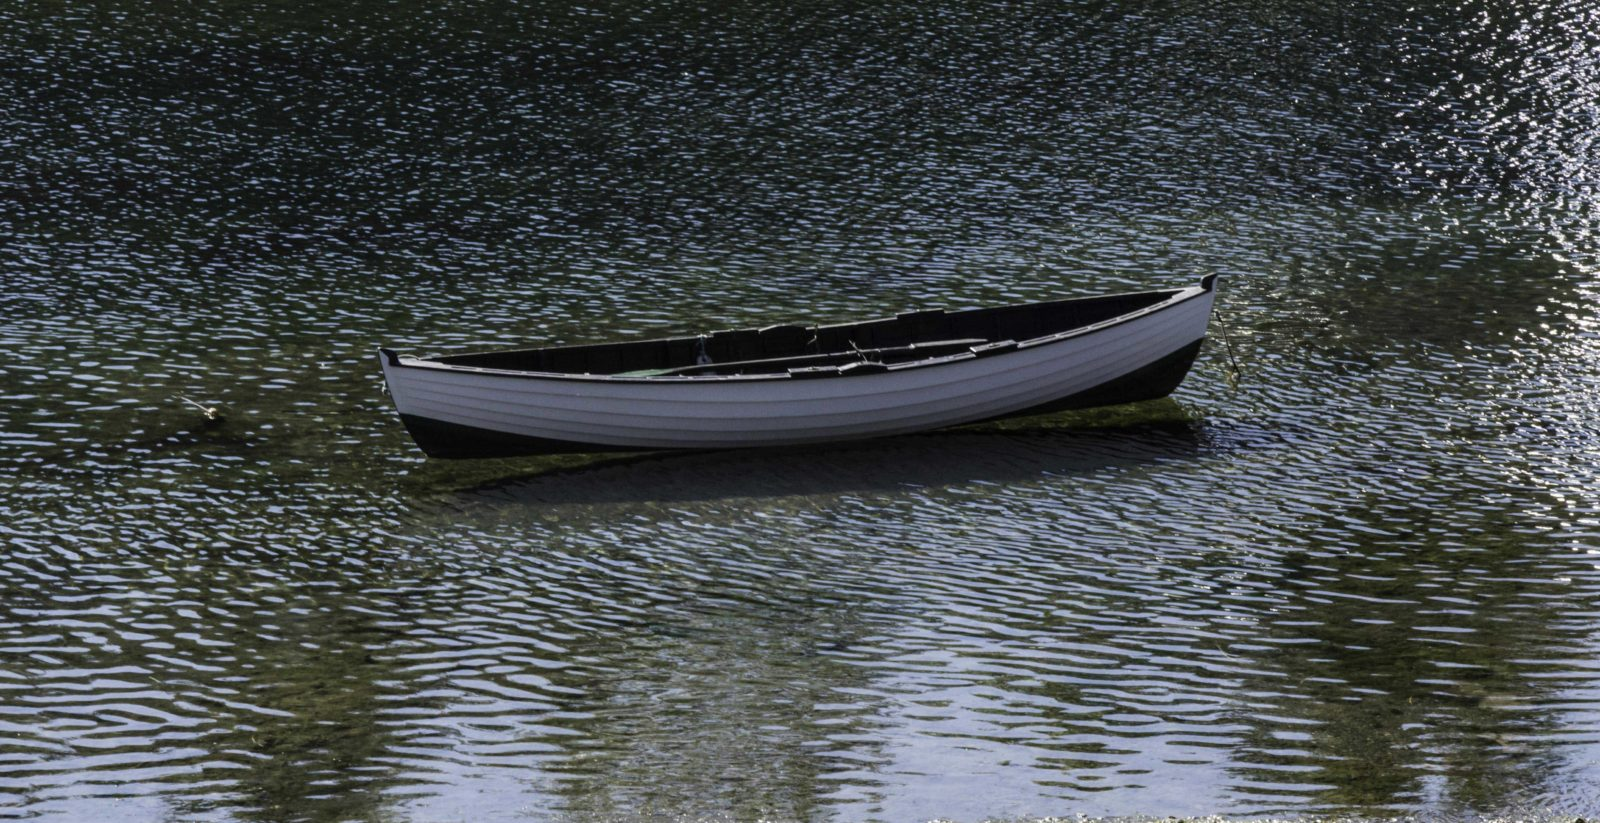 boat floating in shallow water